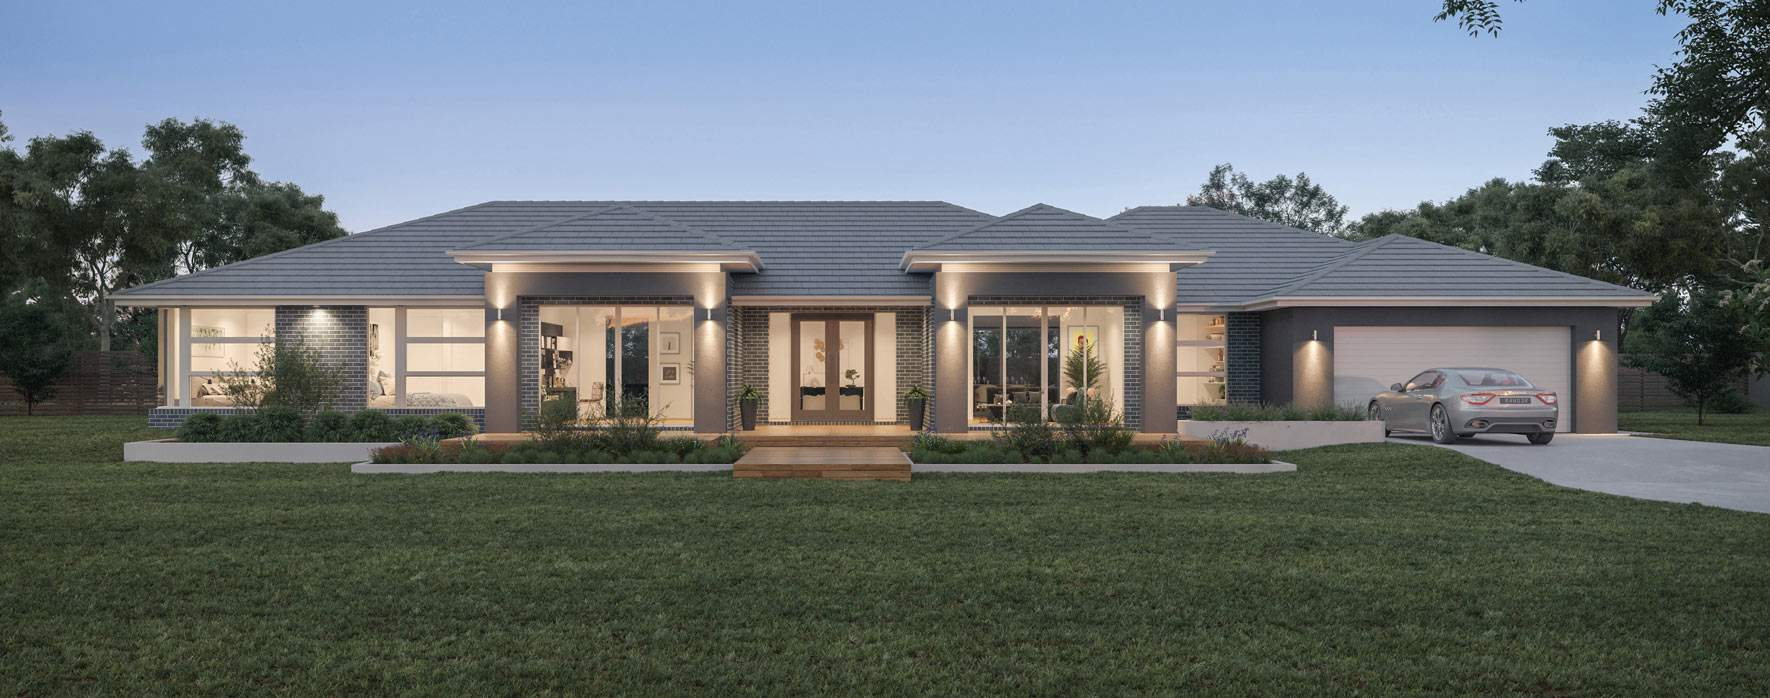 Locksley 41-Acreage House Design-Grange facade